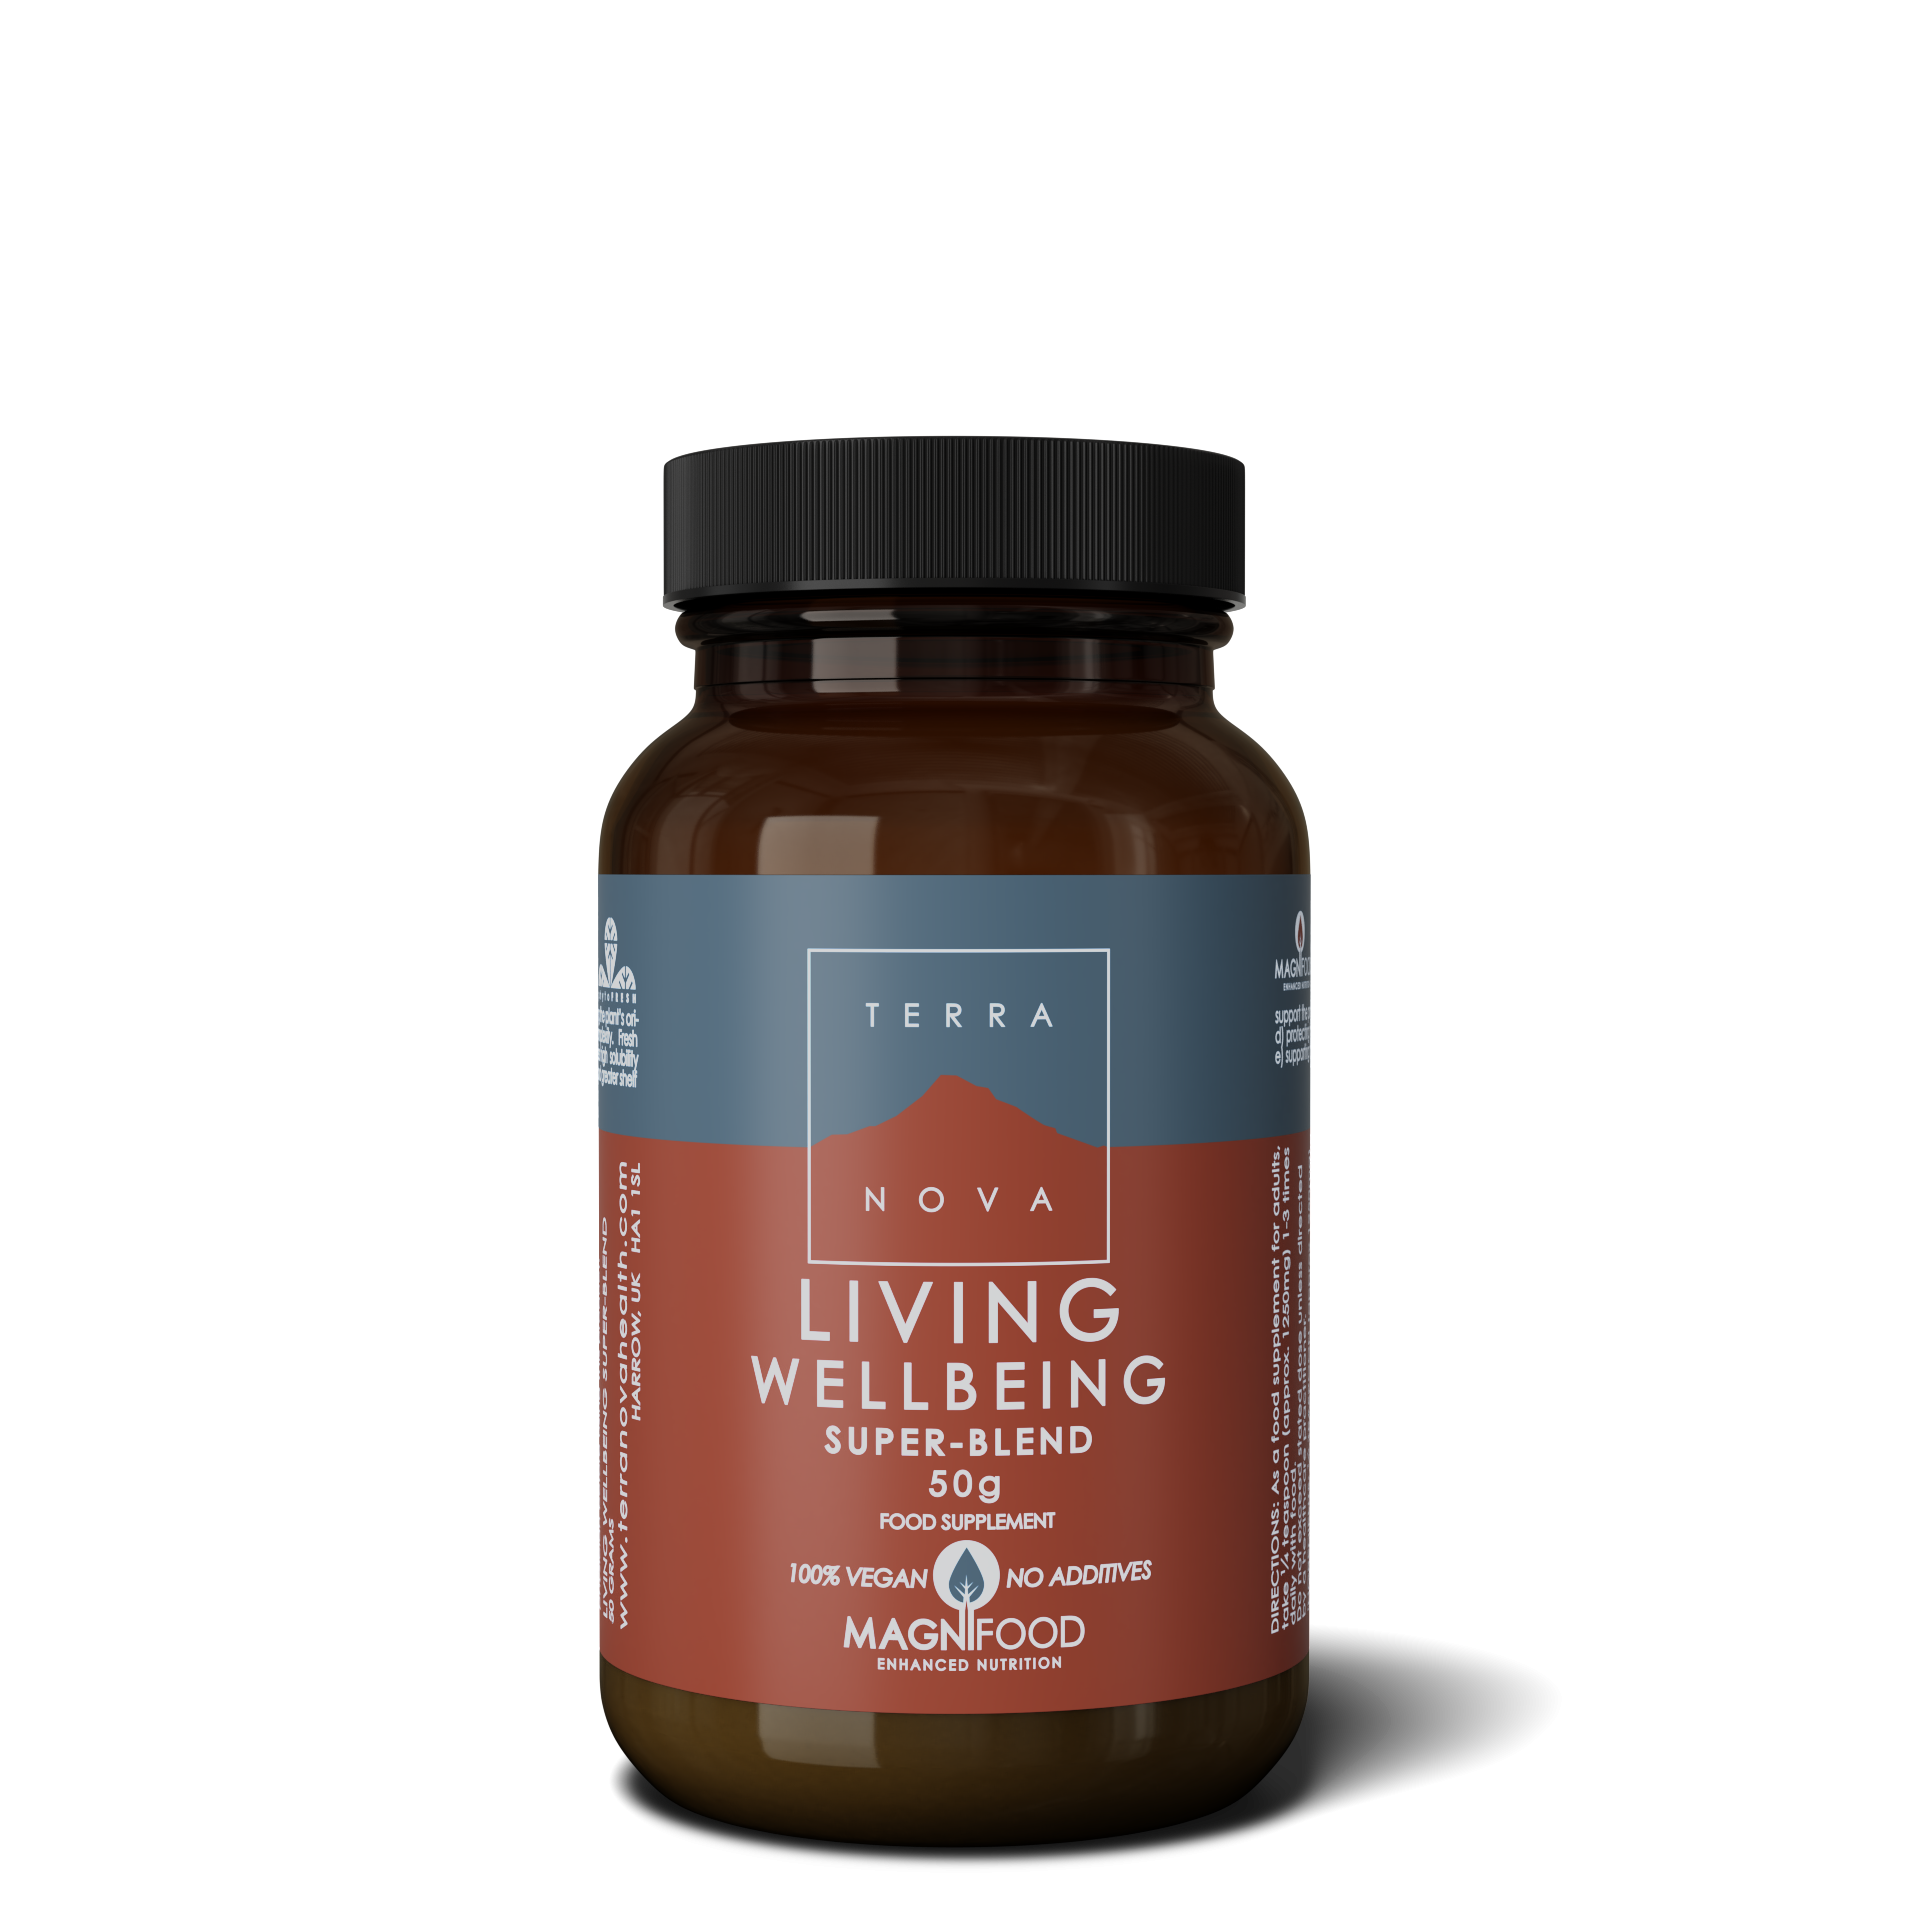 1988 UK LIVING WELLBEING SUPERBLEND 50g wiz